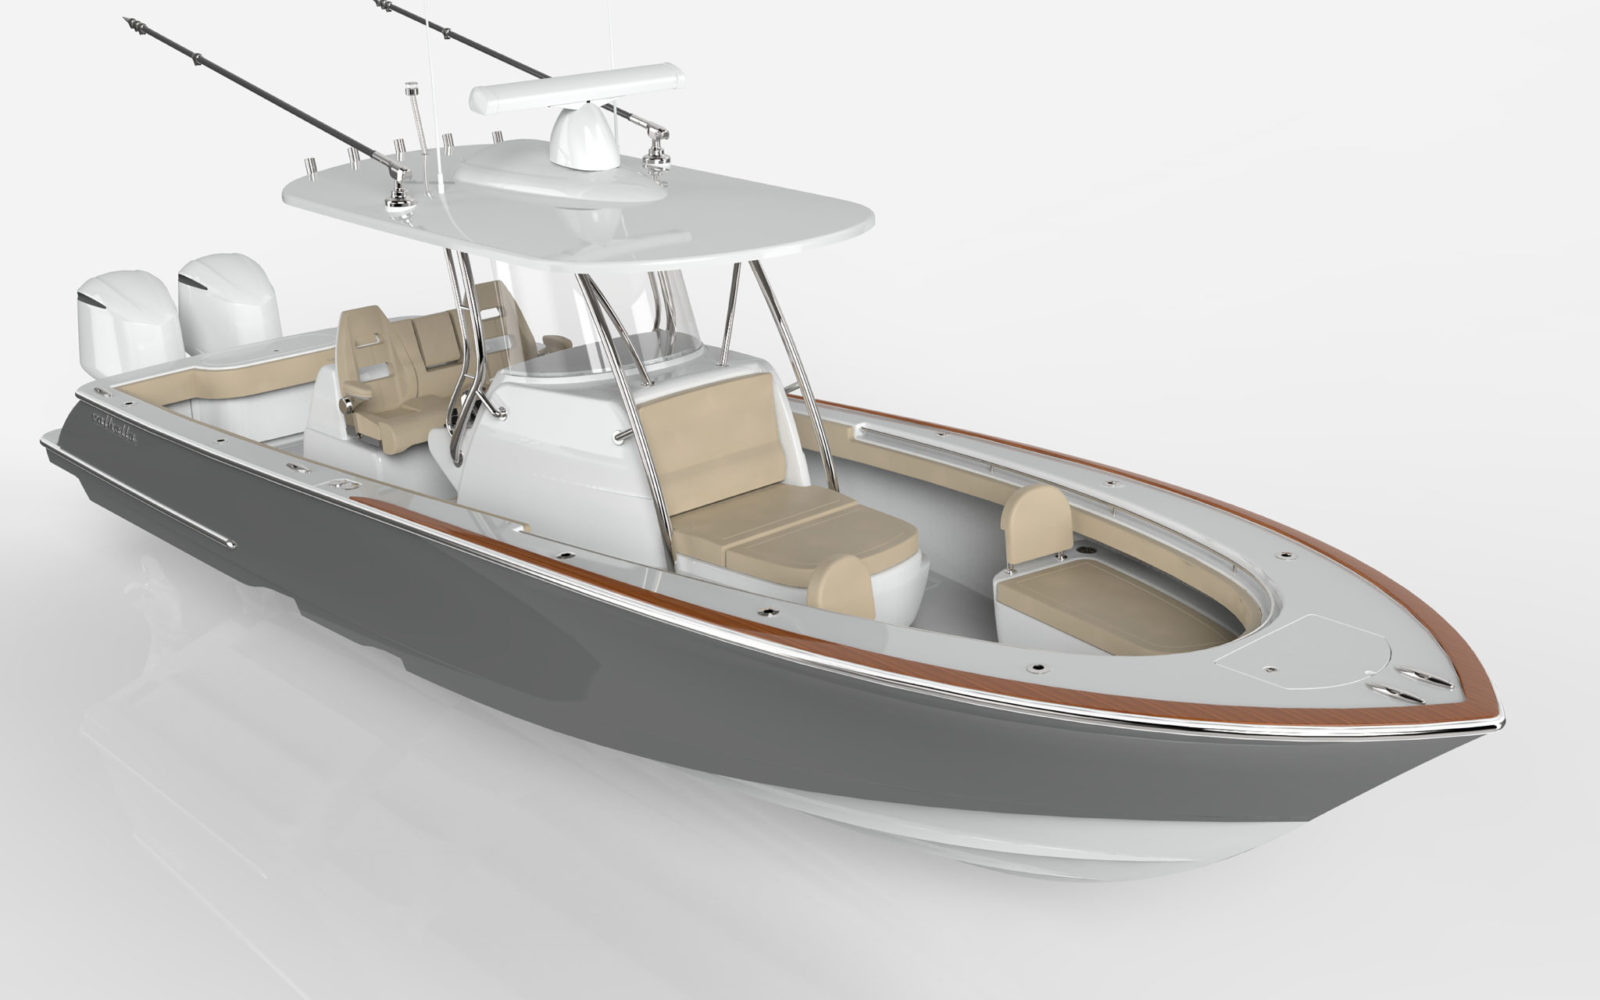 V33_Bow Quarter_Studio | VALHALLA V-33 (New)